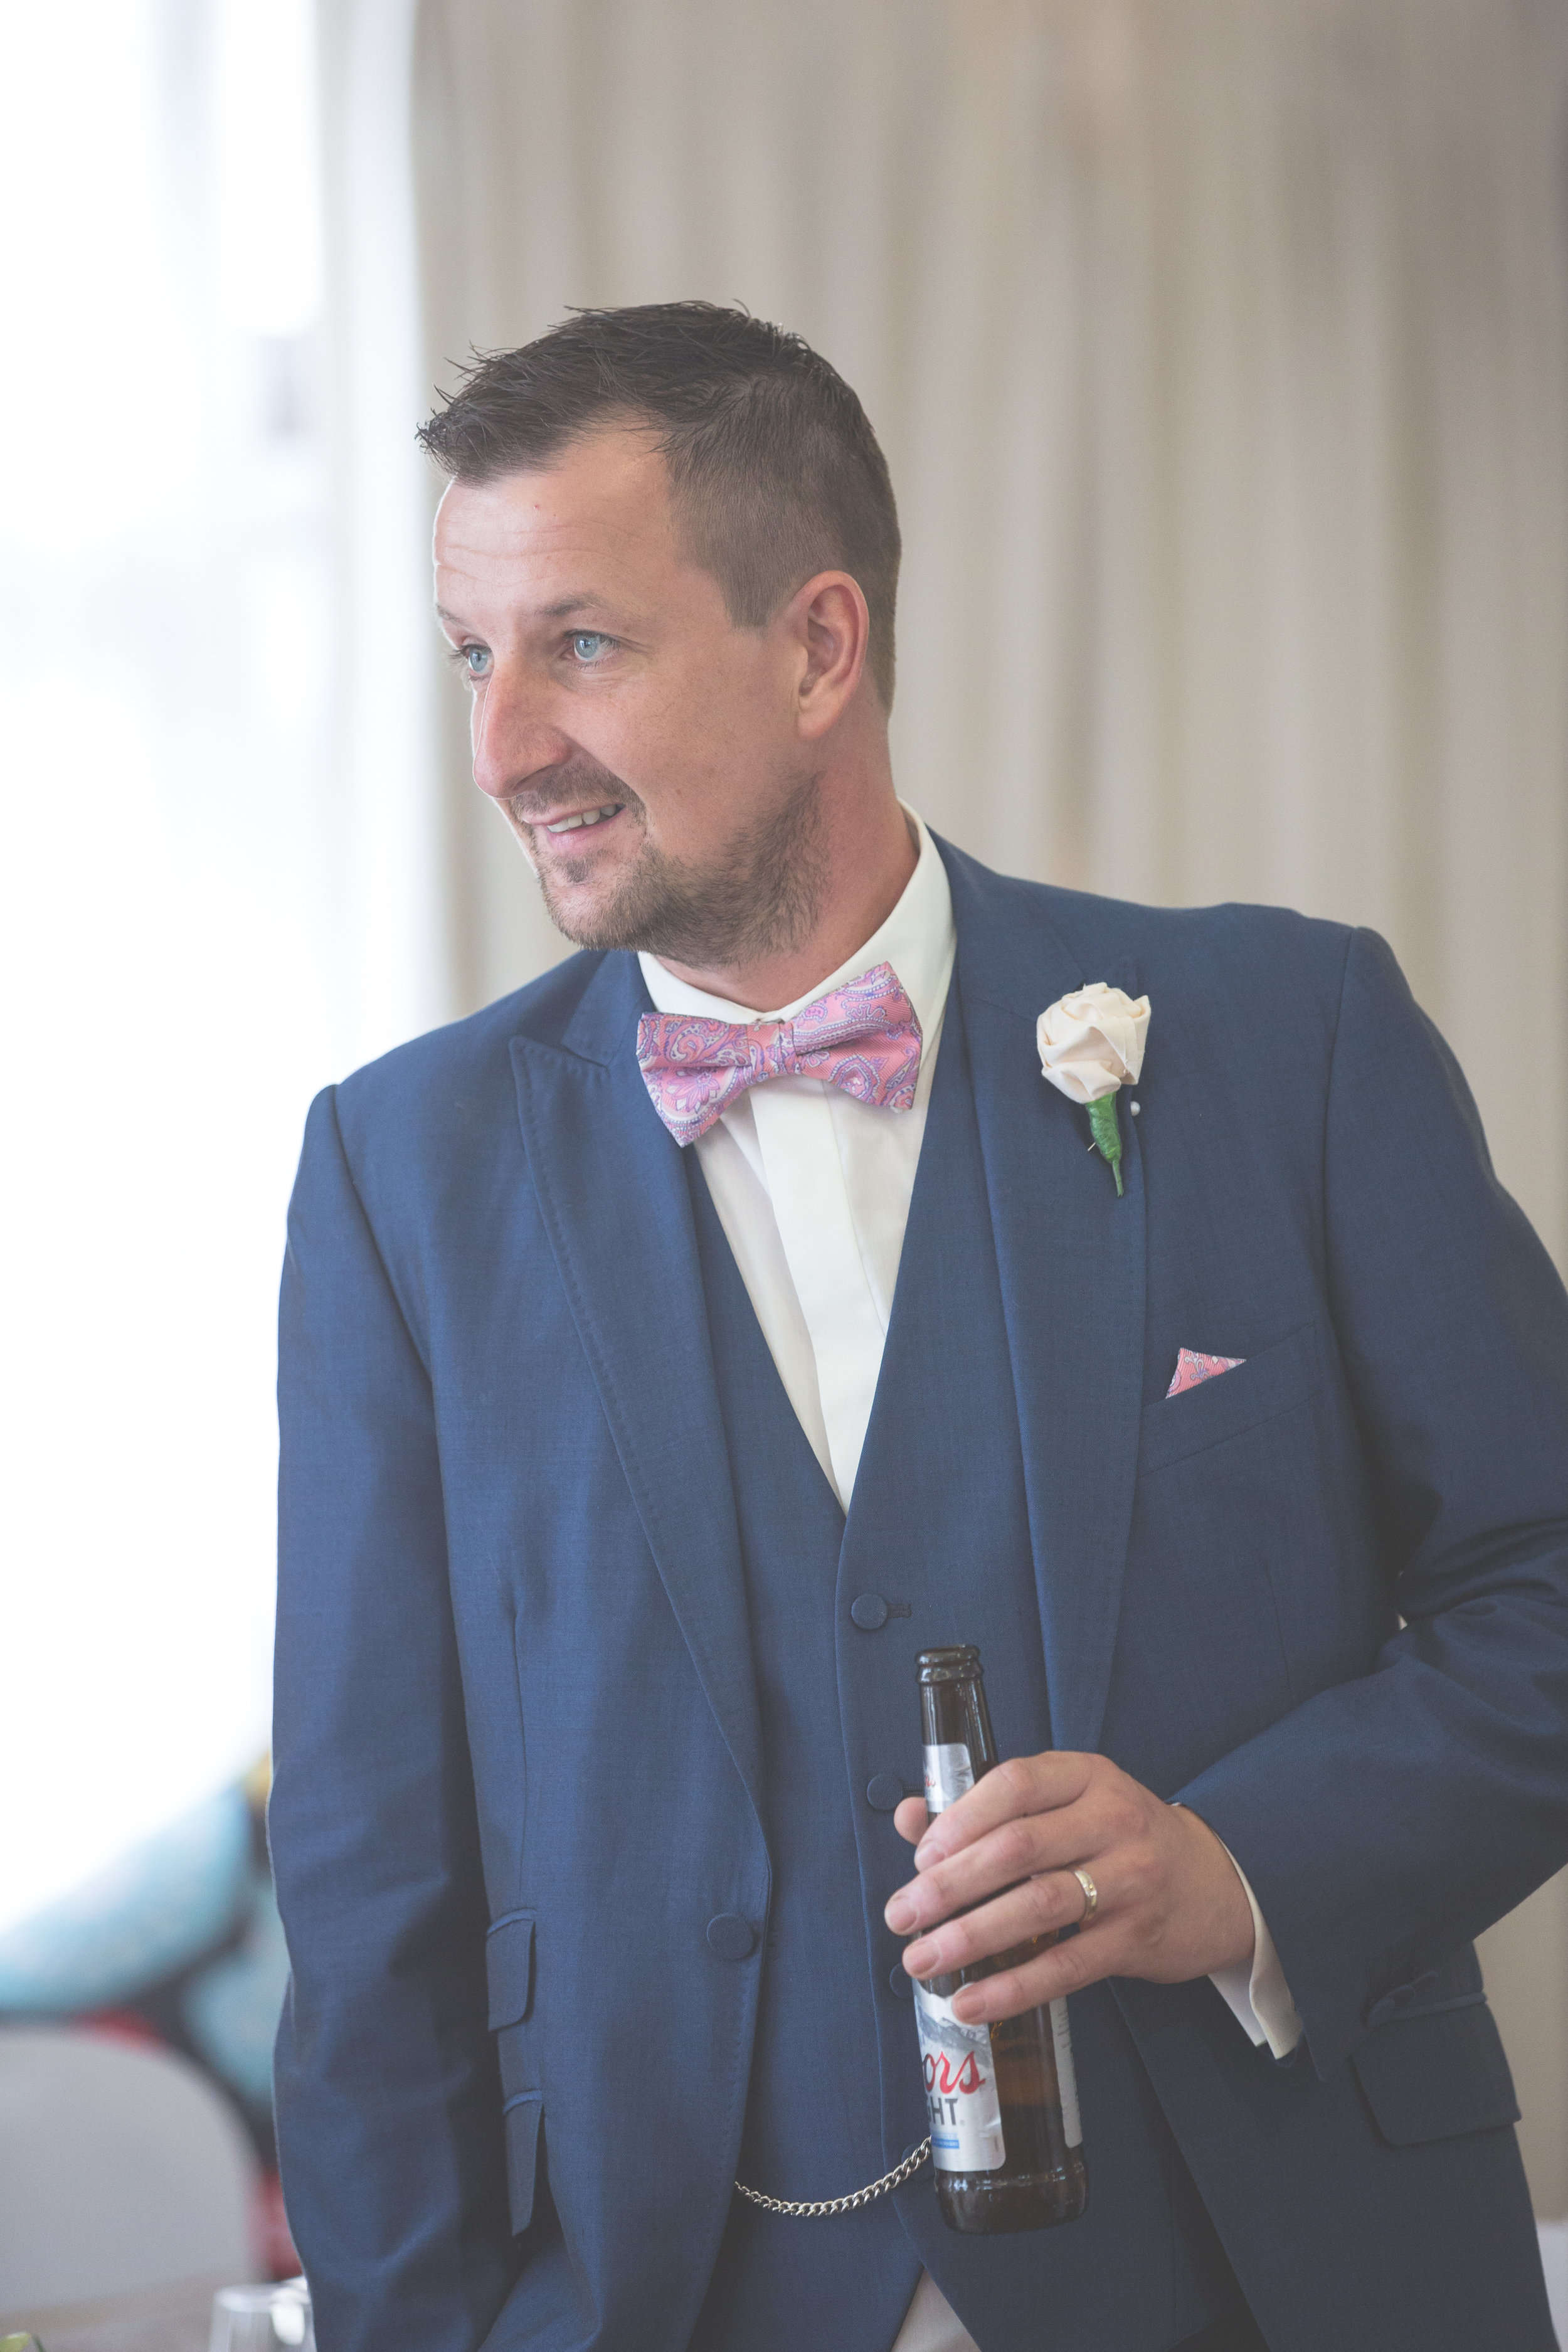 Antoinette & Stephen - Speeches | Brian McEwan Photography | Wedding Photographer Northern Ireland 7.jpg